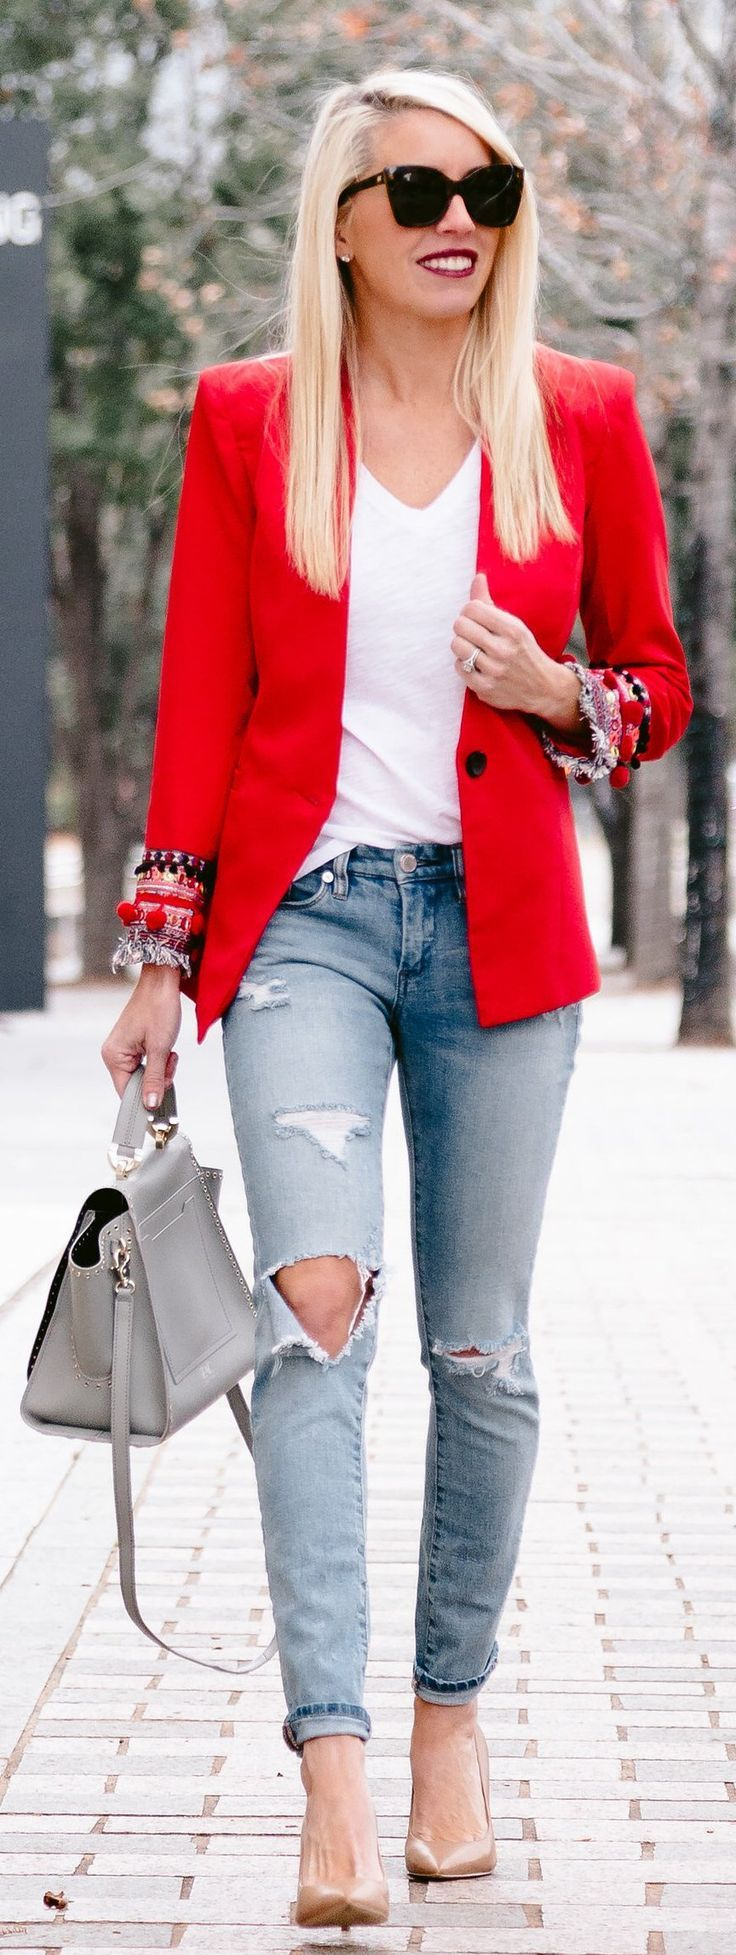 40+ Stylish Outfits Ideas You Must Try This Winter | things i love | Pinterest | Red blazer ...